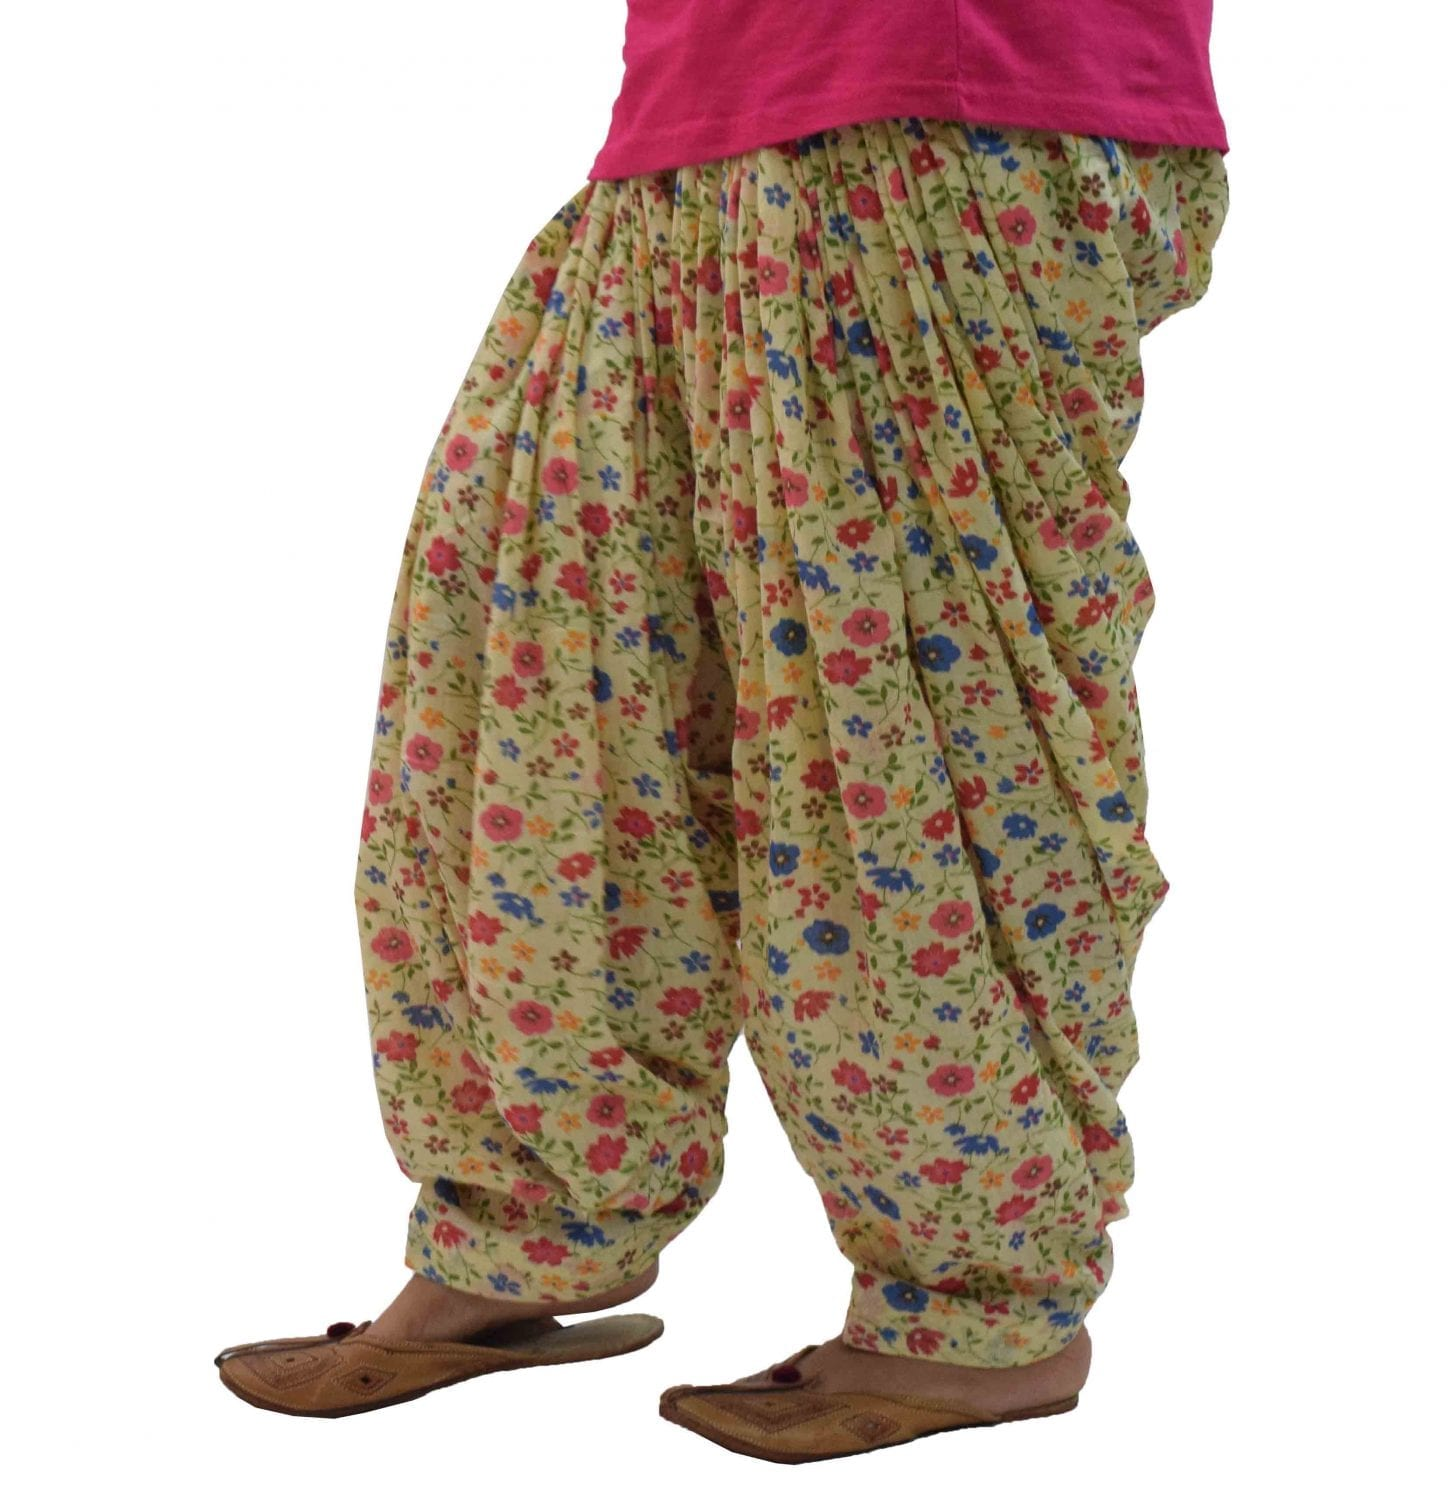 Printed Full Patiala Salwar Limited Edition 100% Pure Cotton PPS289 1